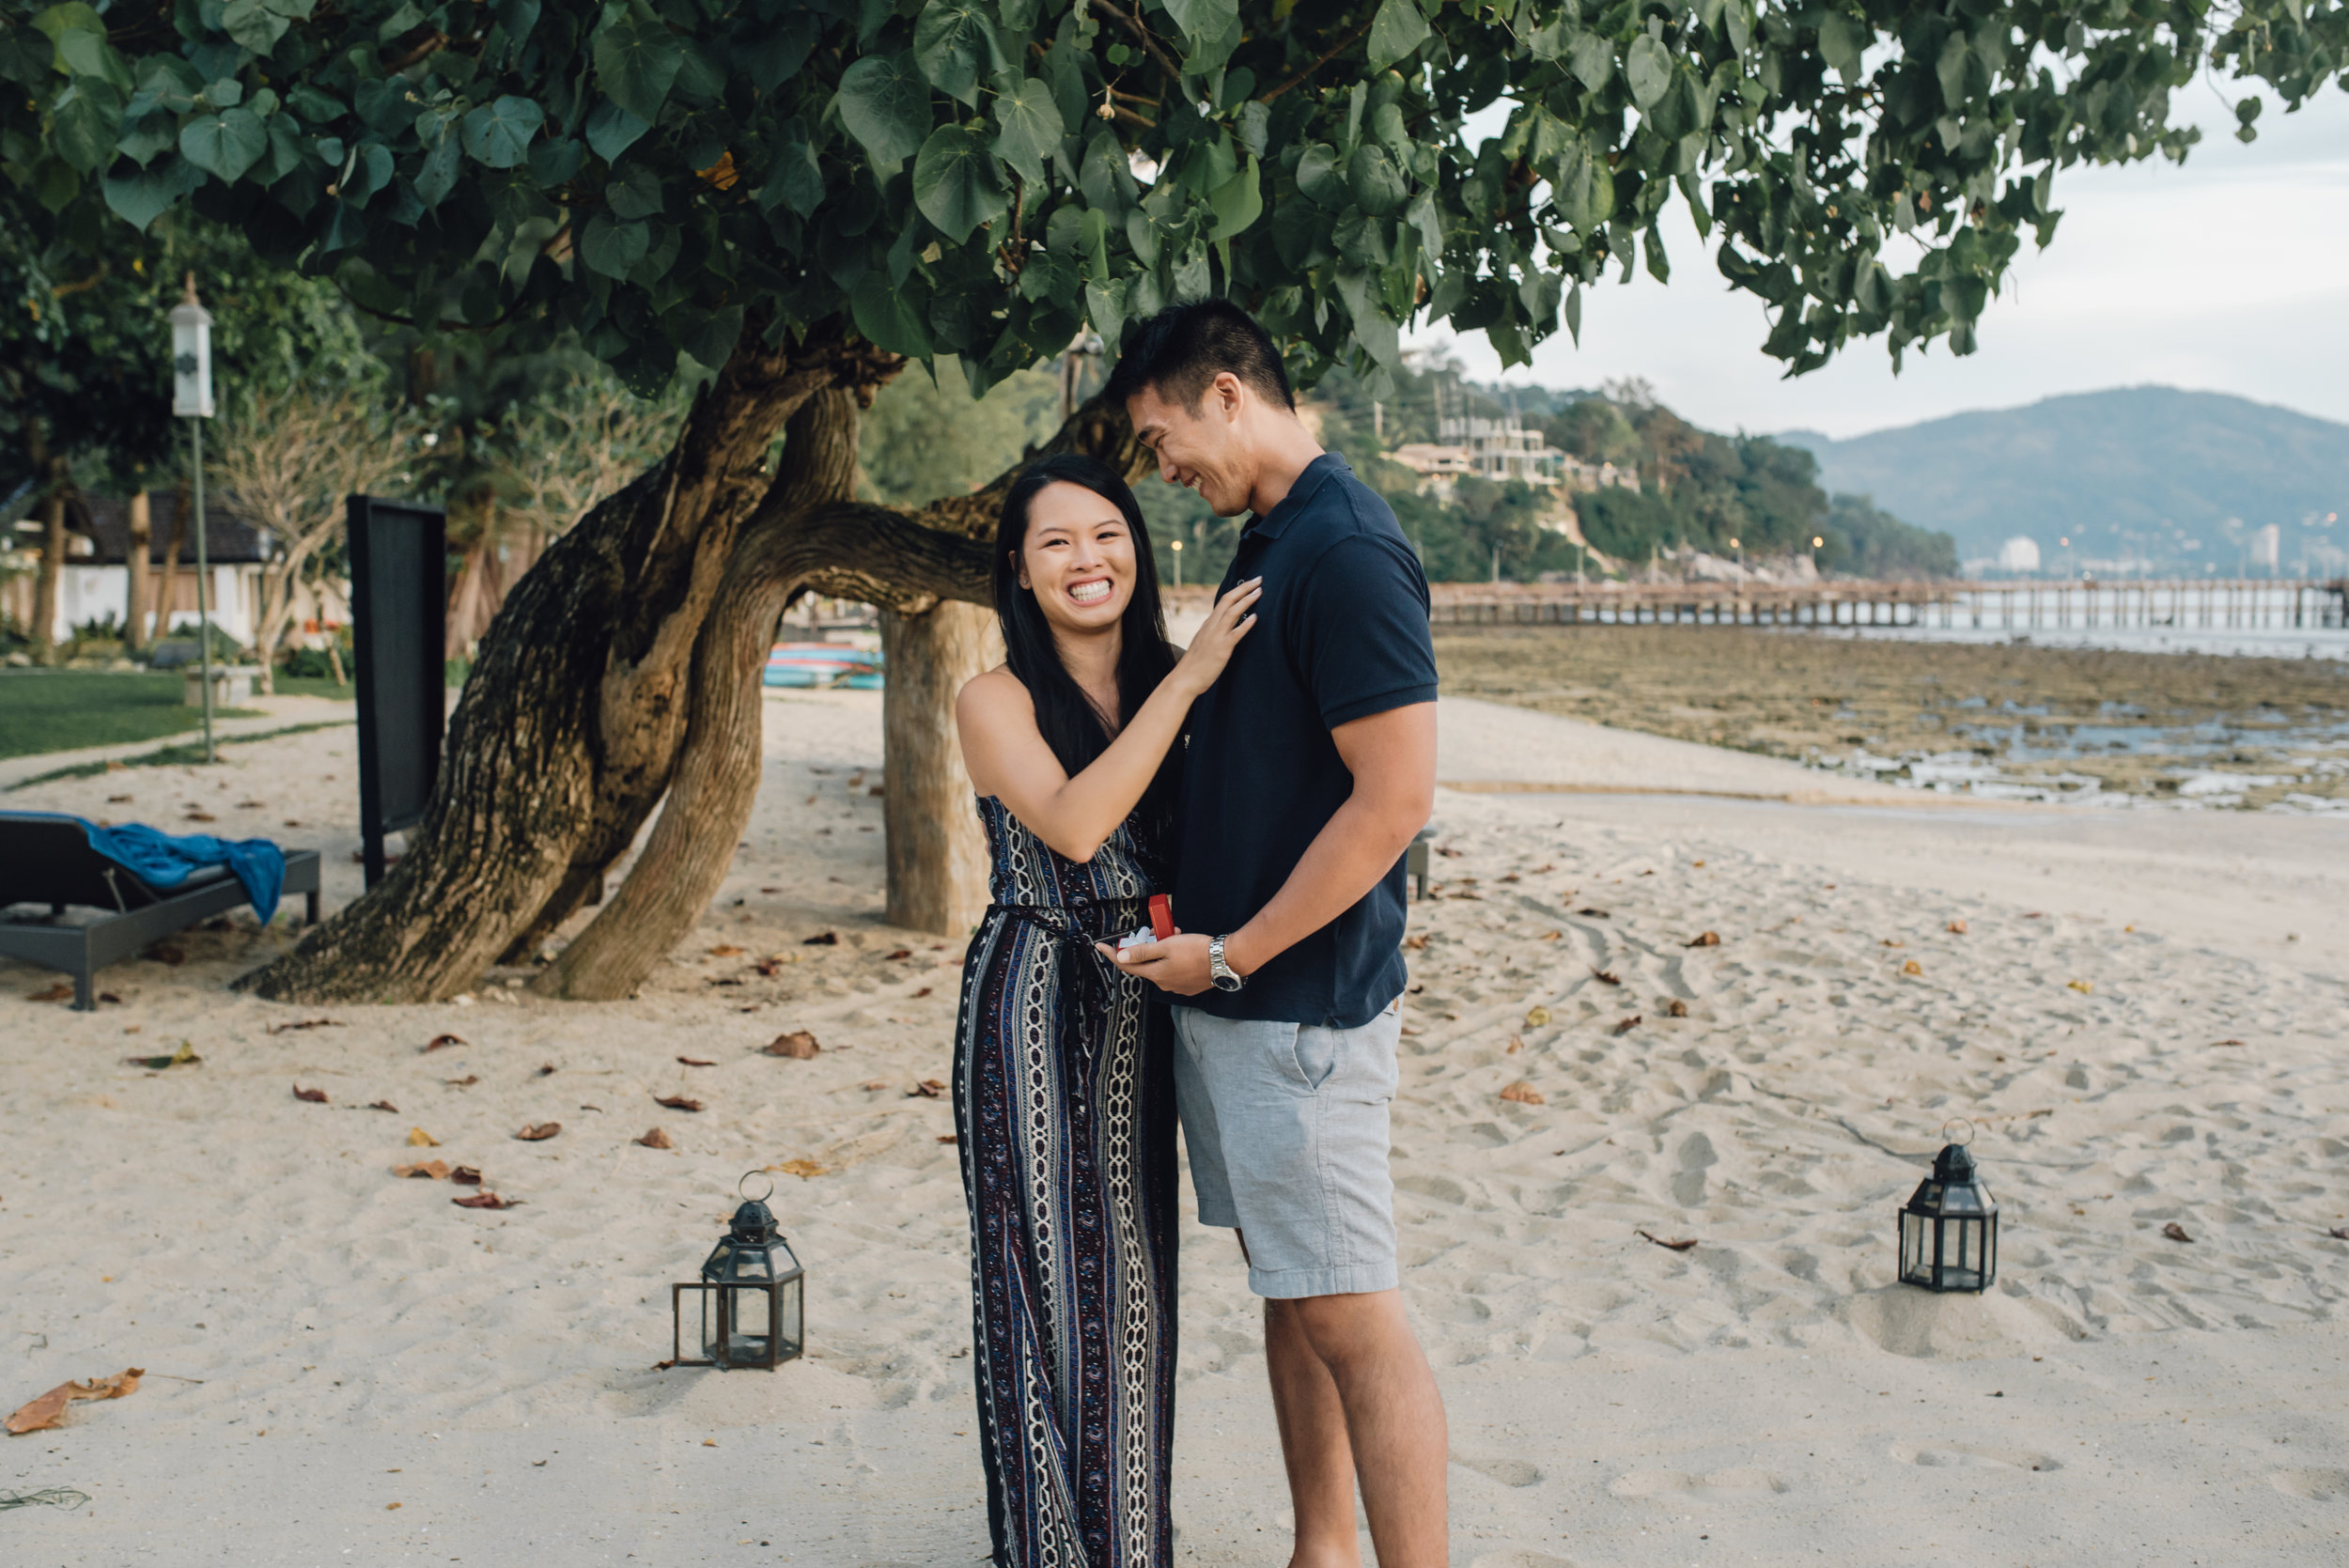 Main and Simple Photography_2016_Engagement_Thailand_B+E_Proposal-75.jpg